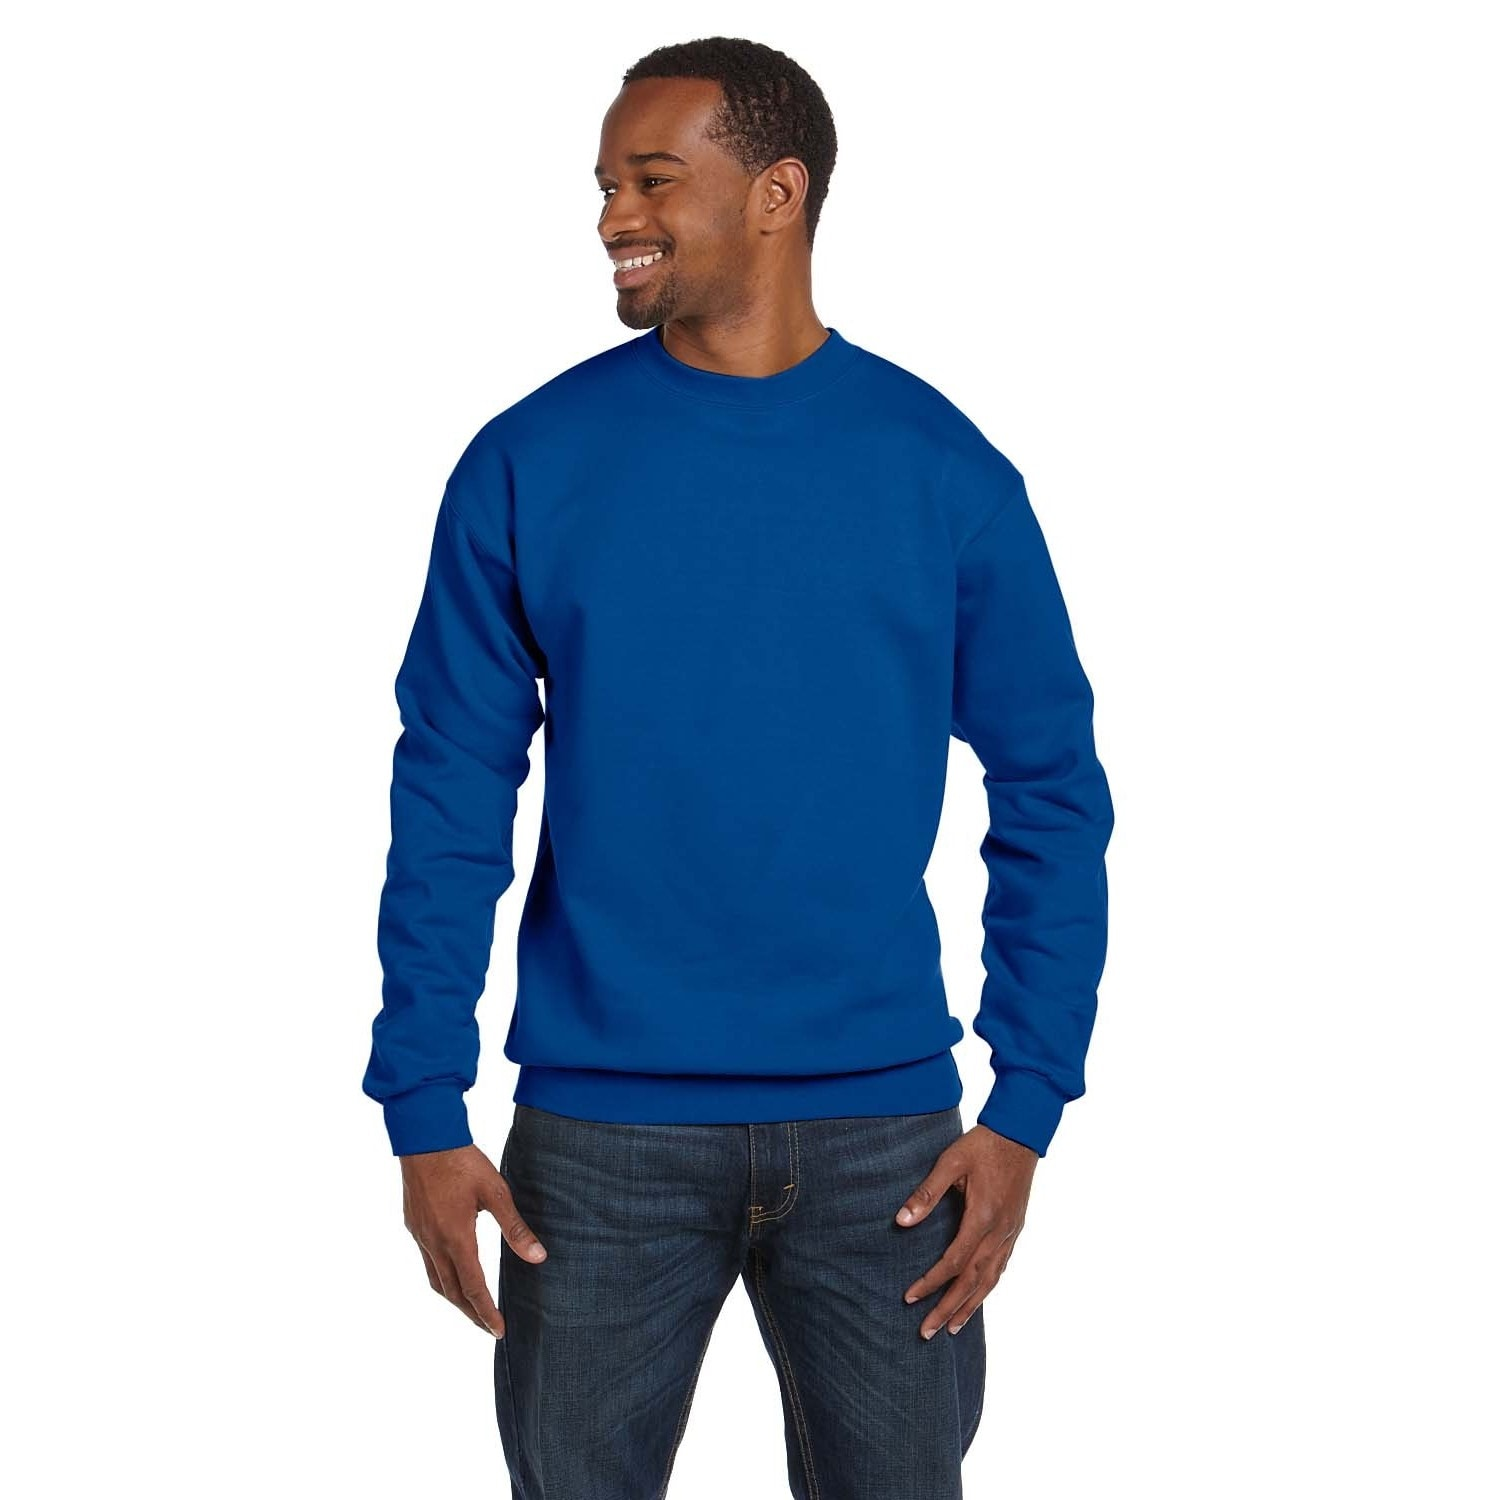 d57ab2f51e25 Shop Gildan Men s Royal Blue Cotton Polyester Ringspun Big and Tall Crewneck  Sweater - On Sale - Free Shipping On Orders Over  45 - Overstock.com -  12448888